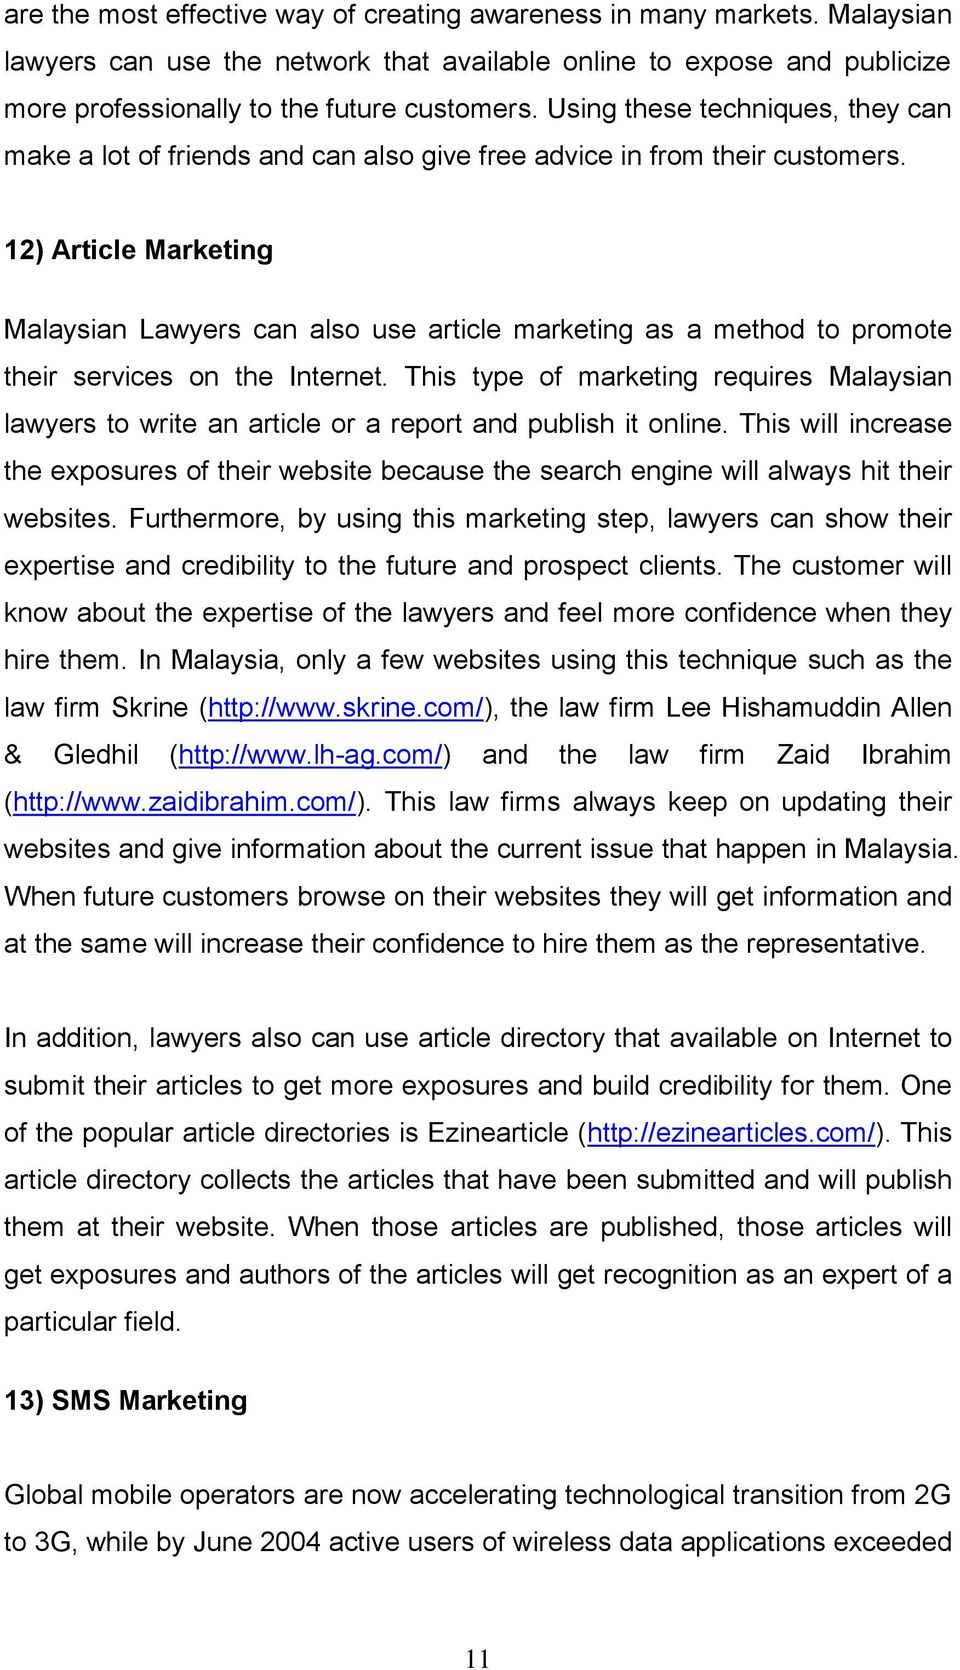 12) Article Marketing Malaysian Lawyers can also use article marketing as a method to promote their services on the Internet.